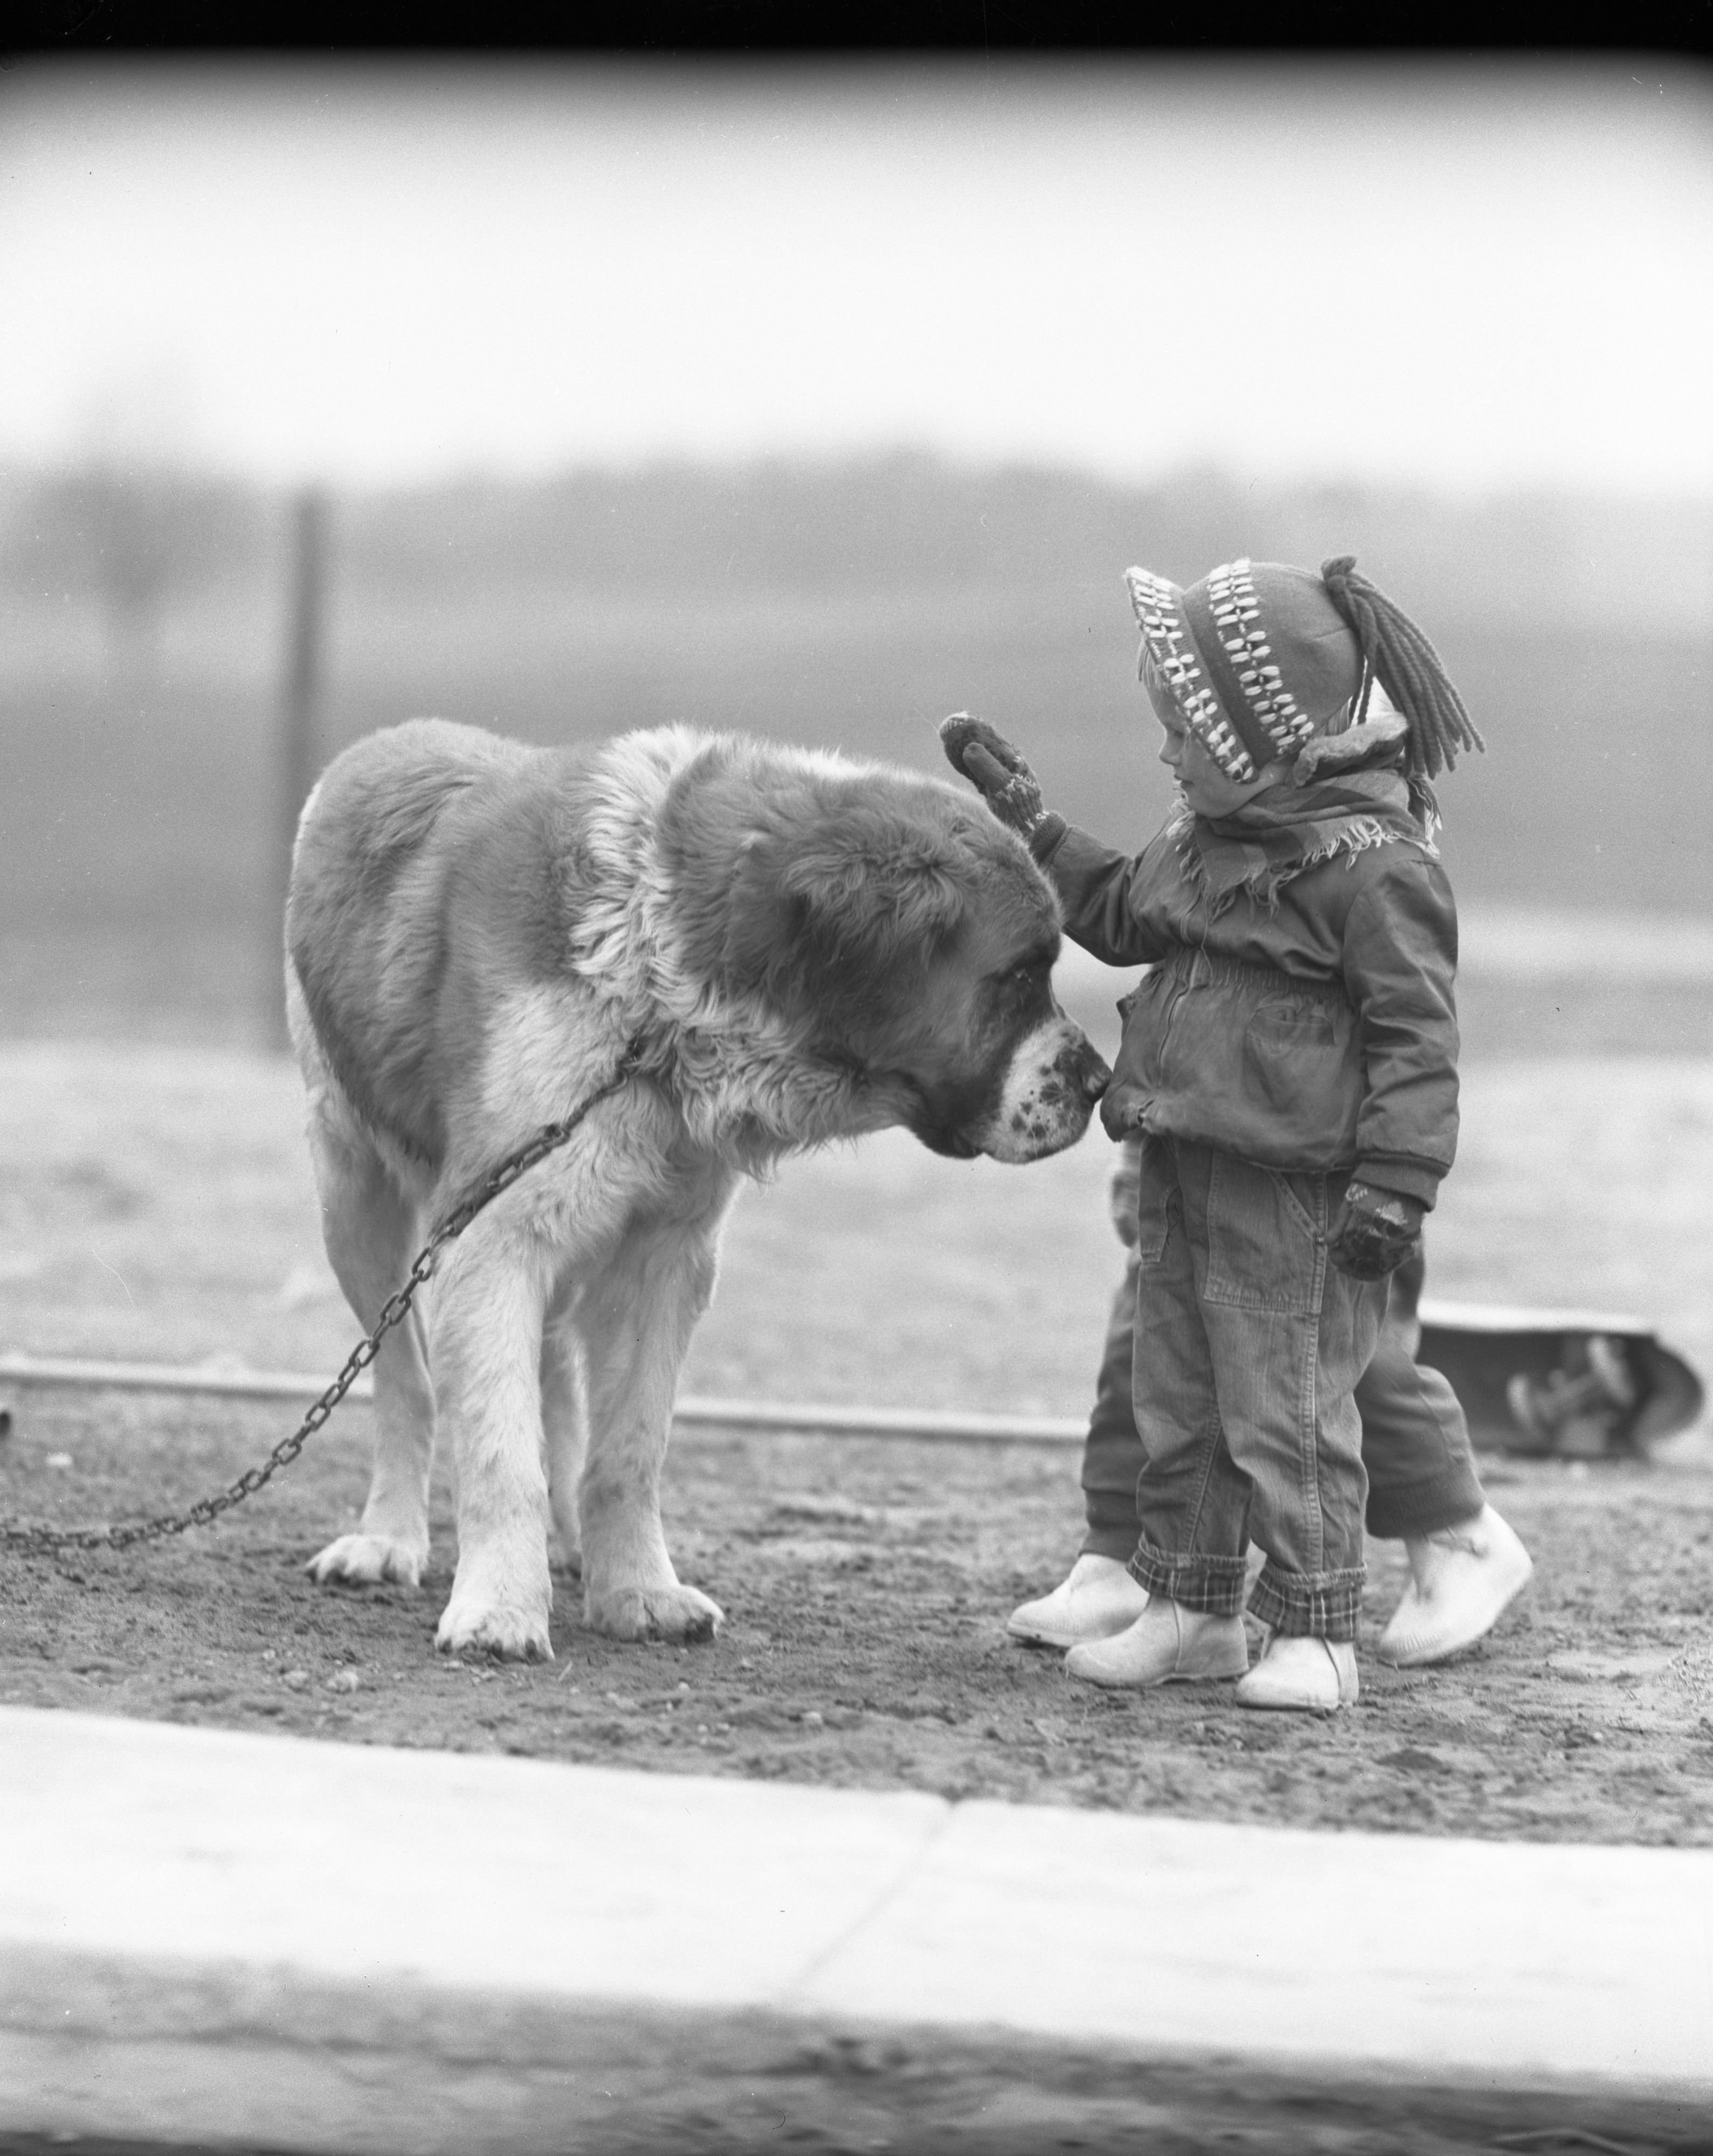 Linda Smith with Duke, the St. Bernard, April 1955 image